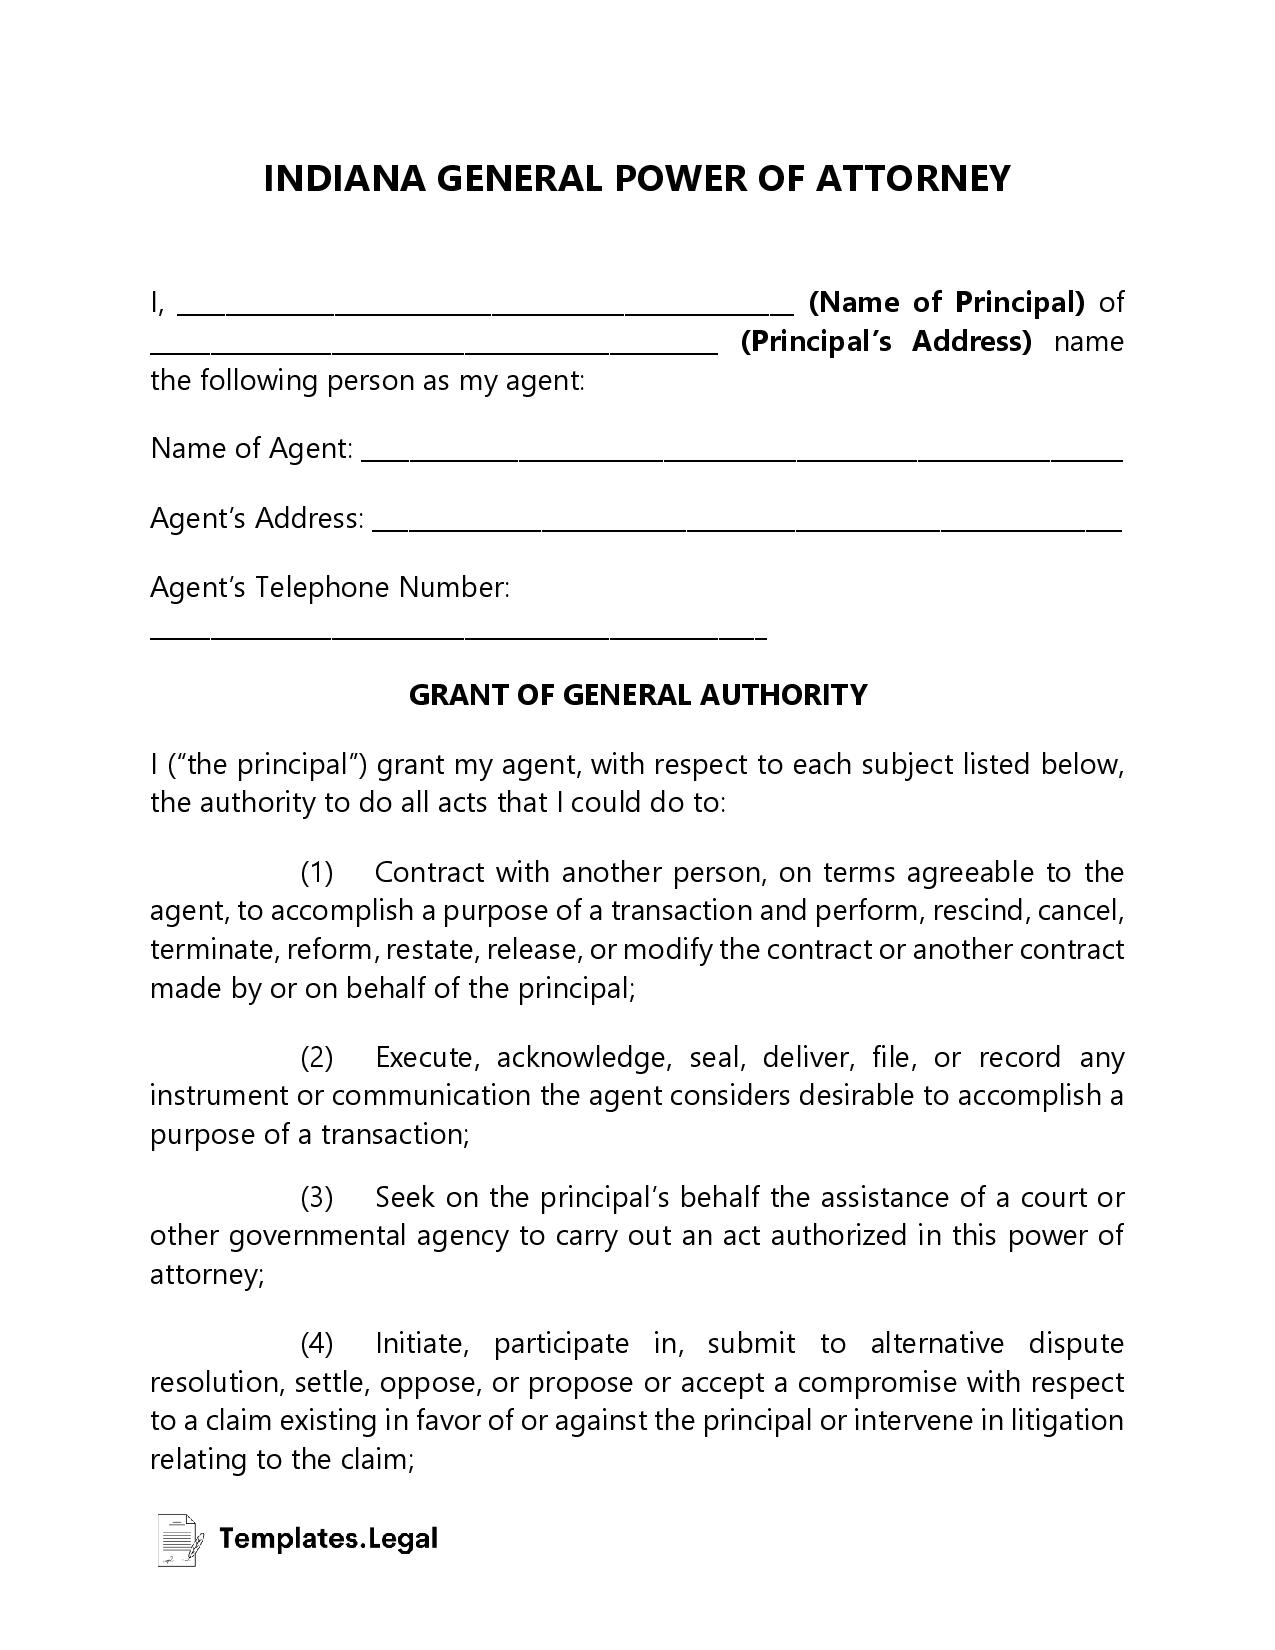 Indiana General Power of Attorney - Templates.Legal